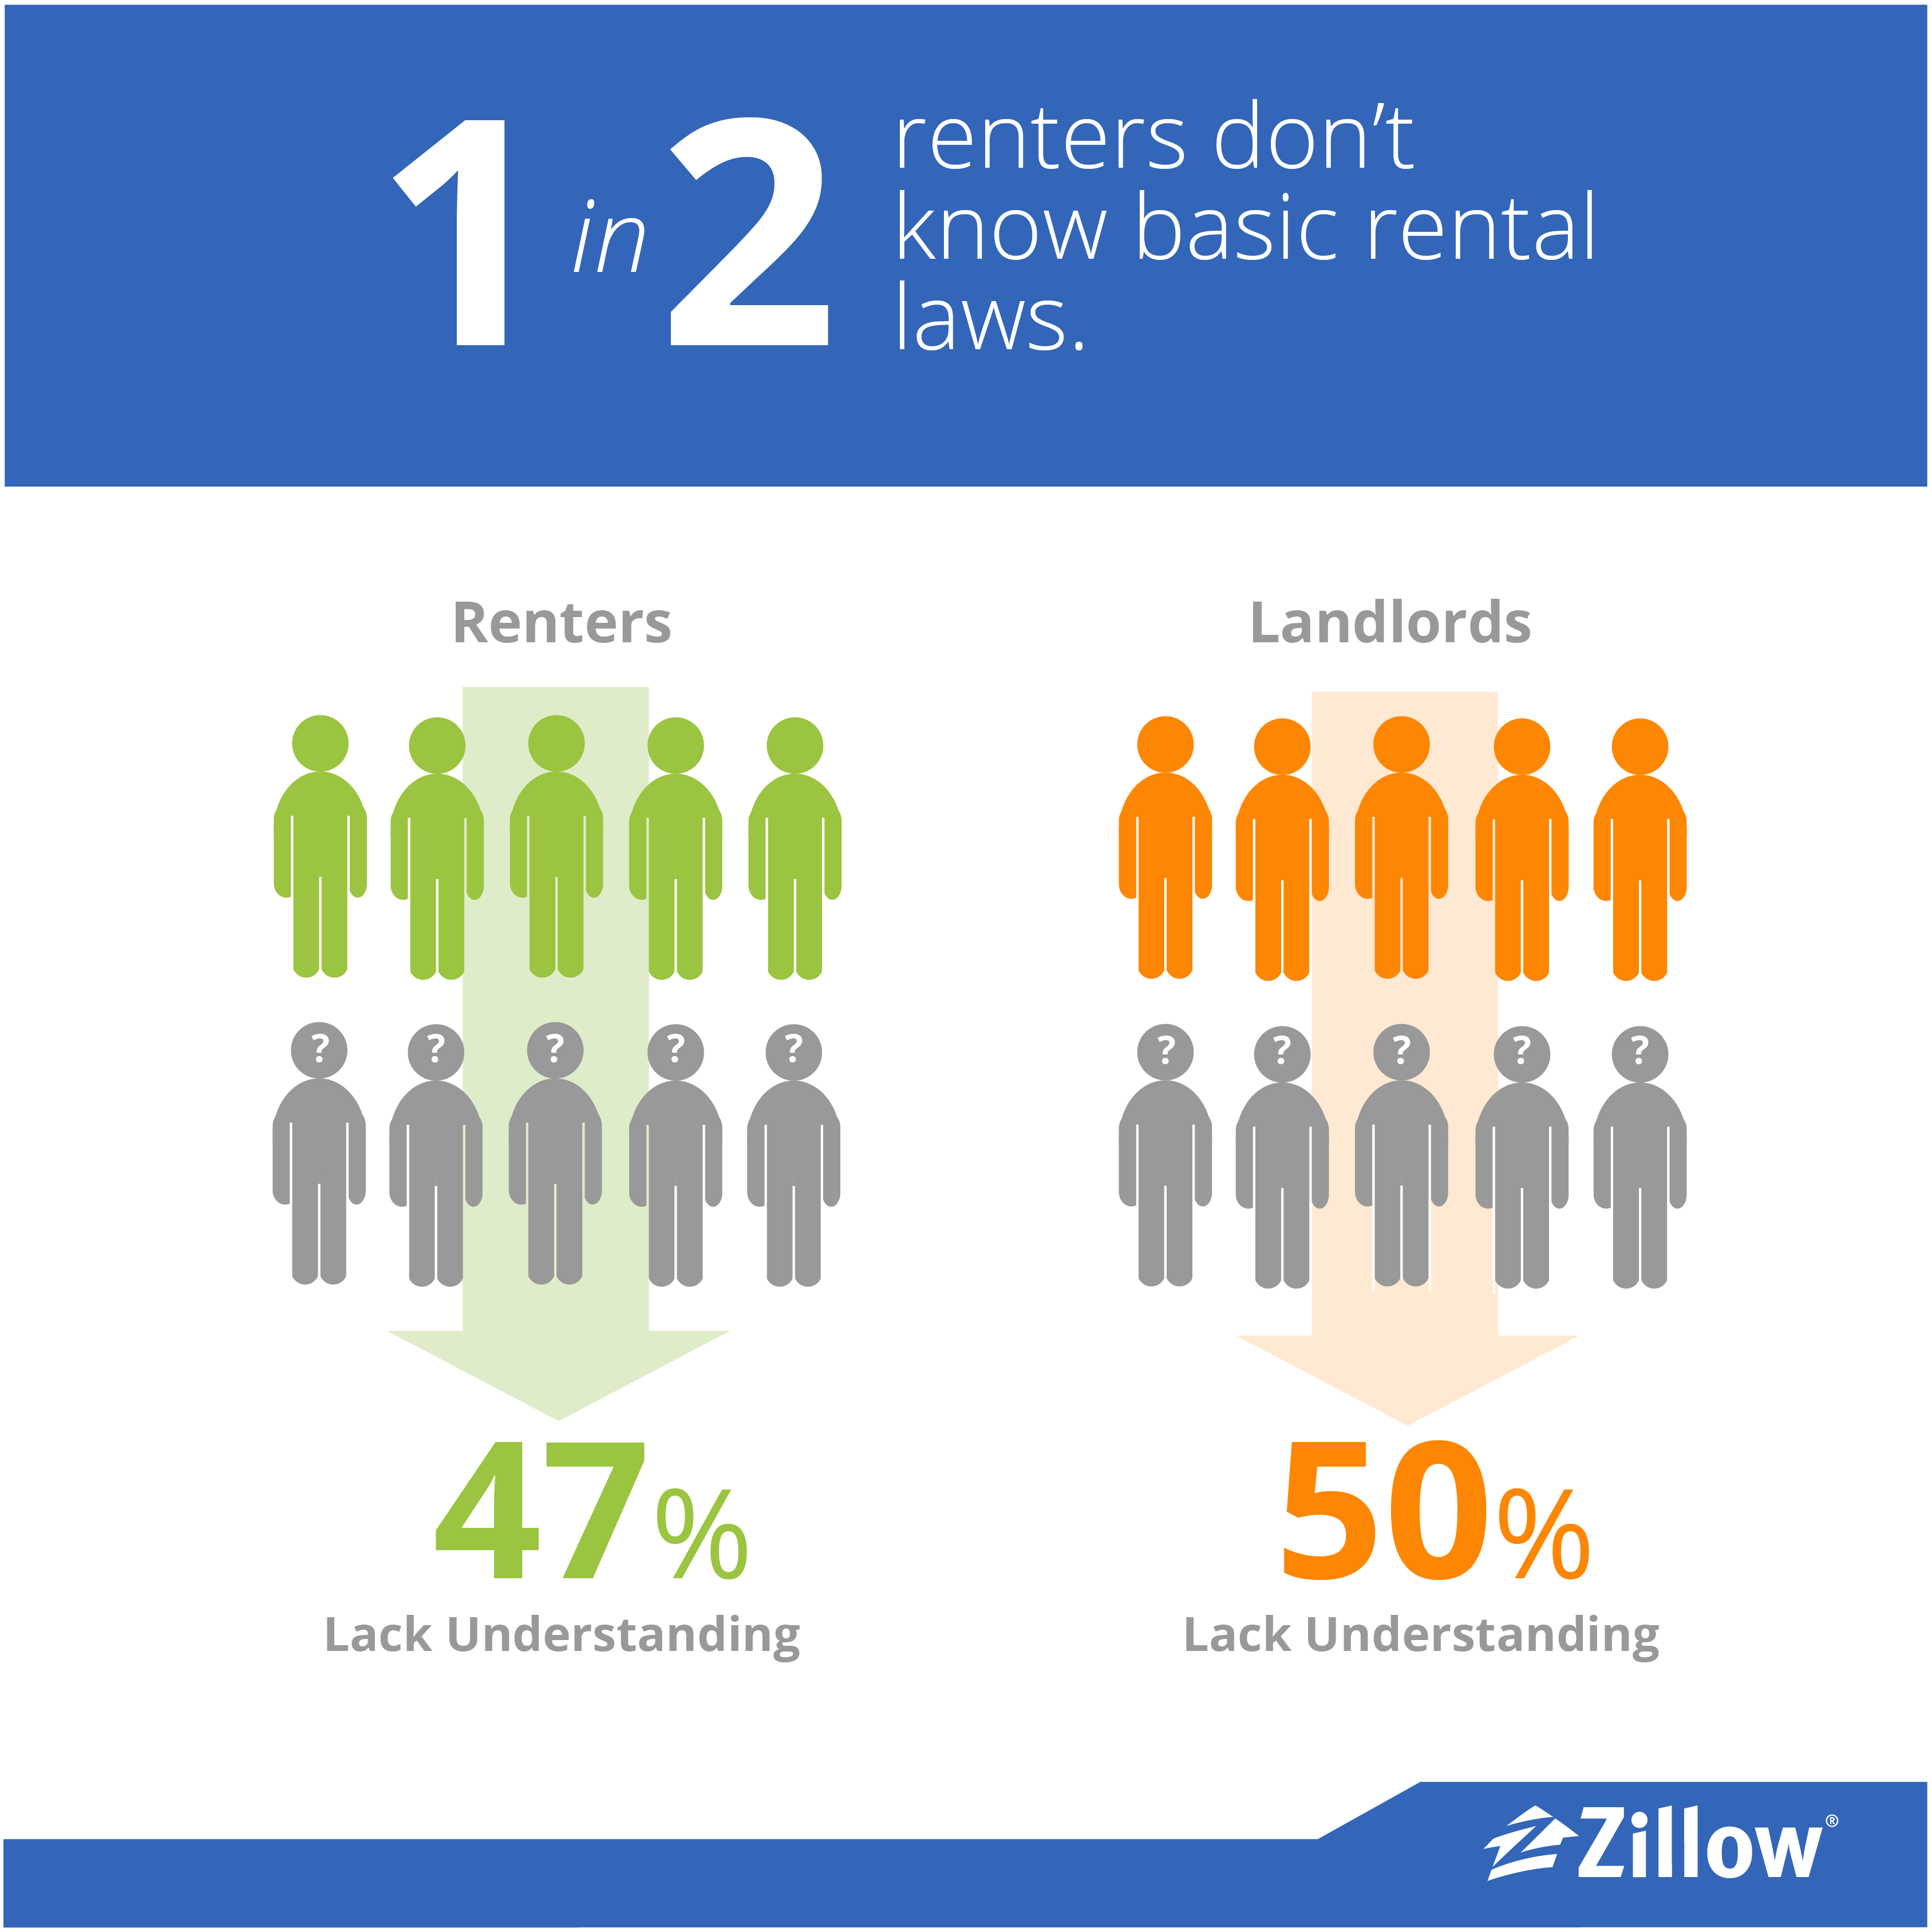 1 in 2 renters don't know basic rental laws